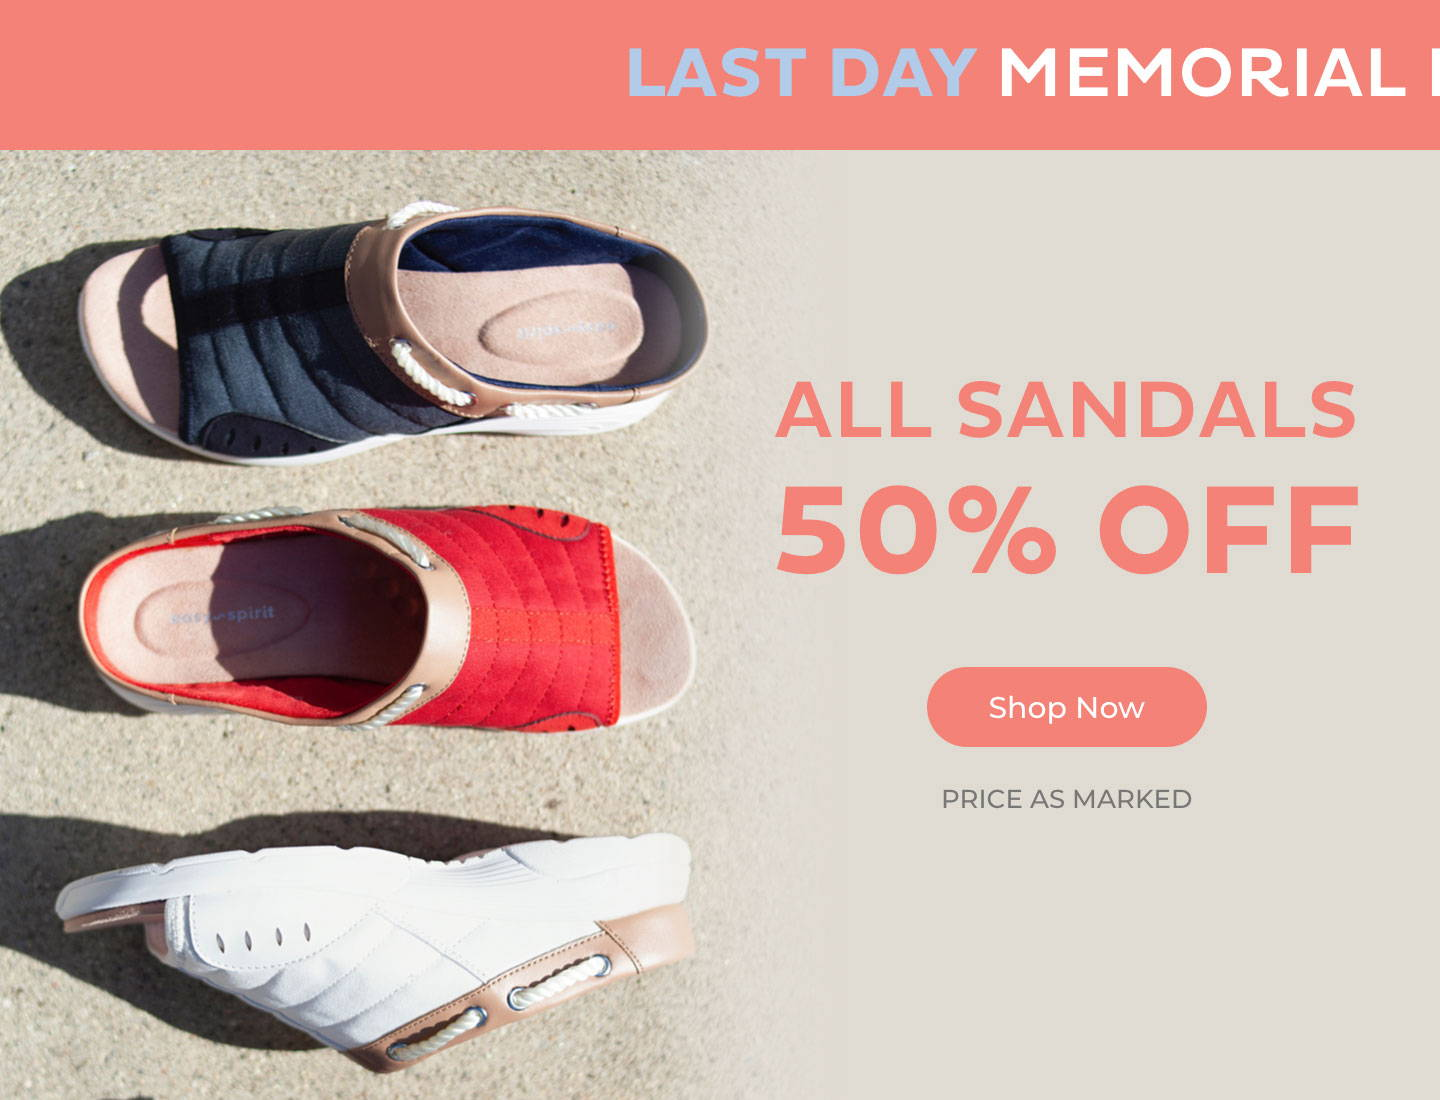 All Sandals 50% Off